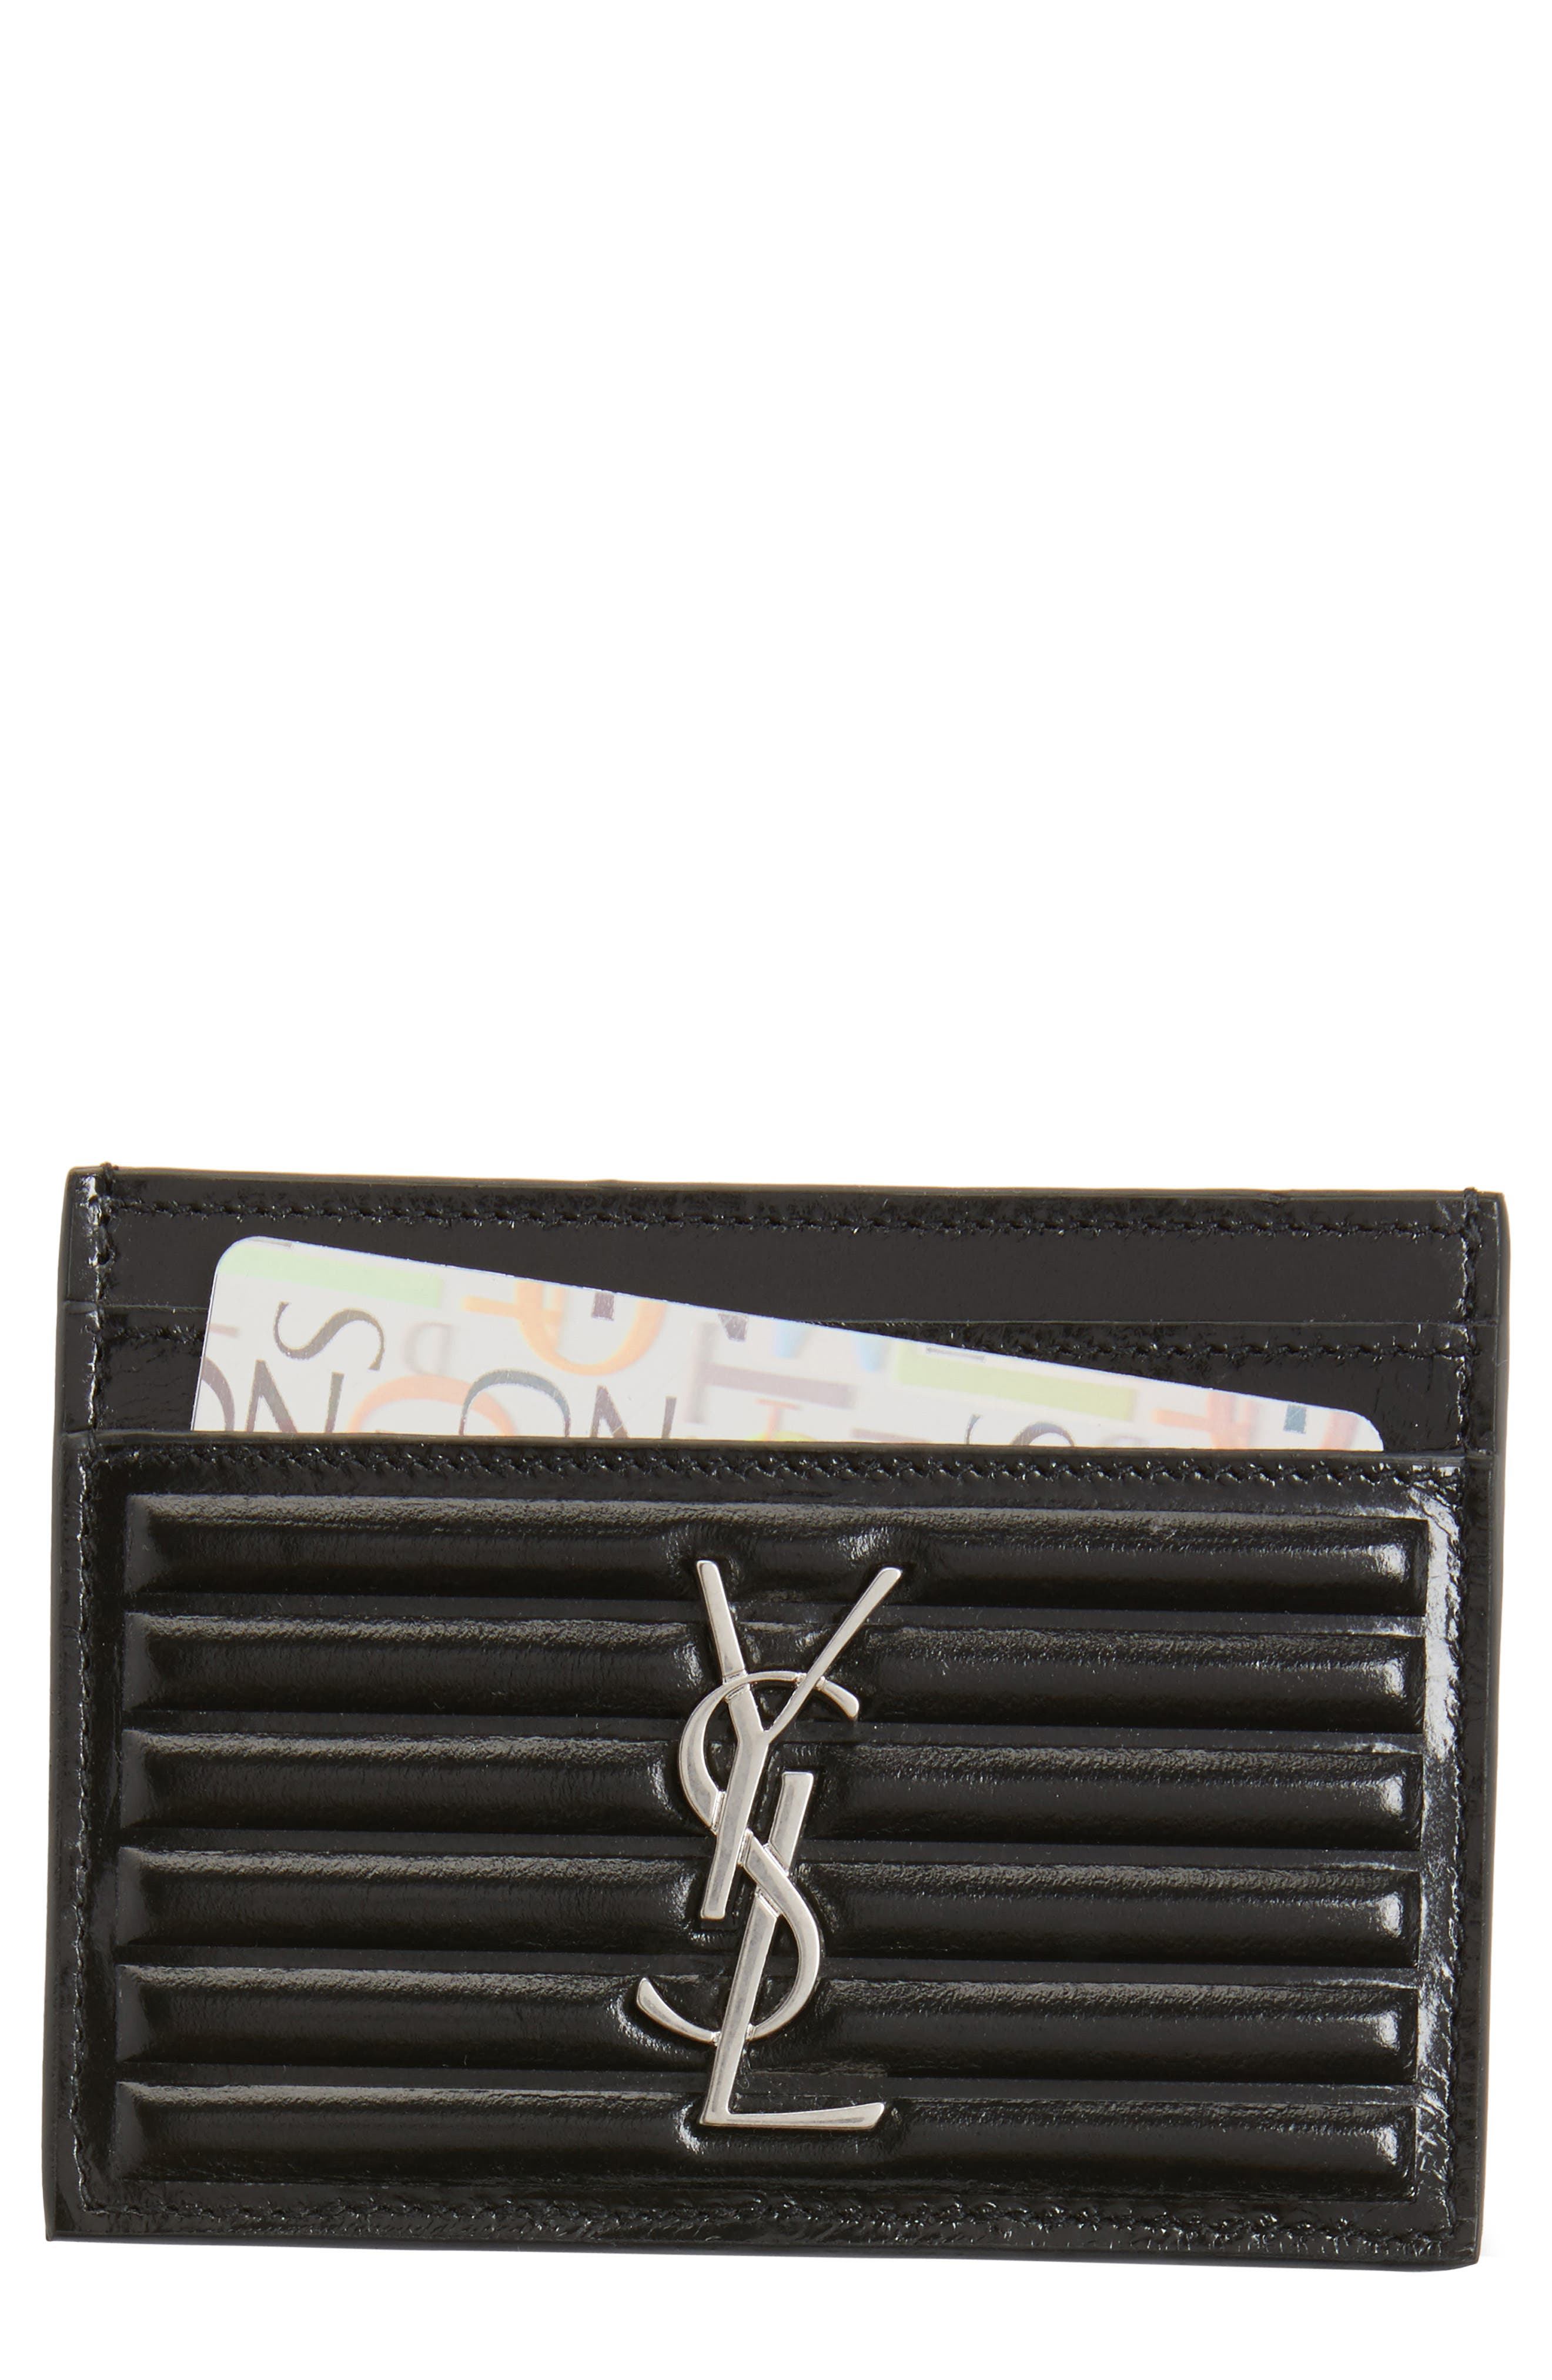 Saint Laurent Opium Textured Leather Card Case